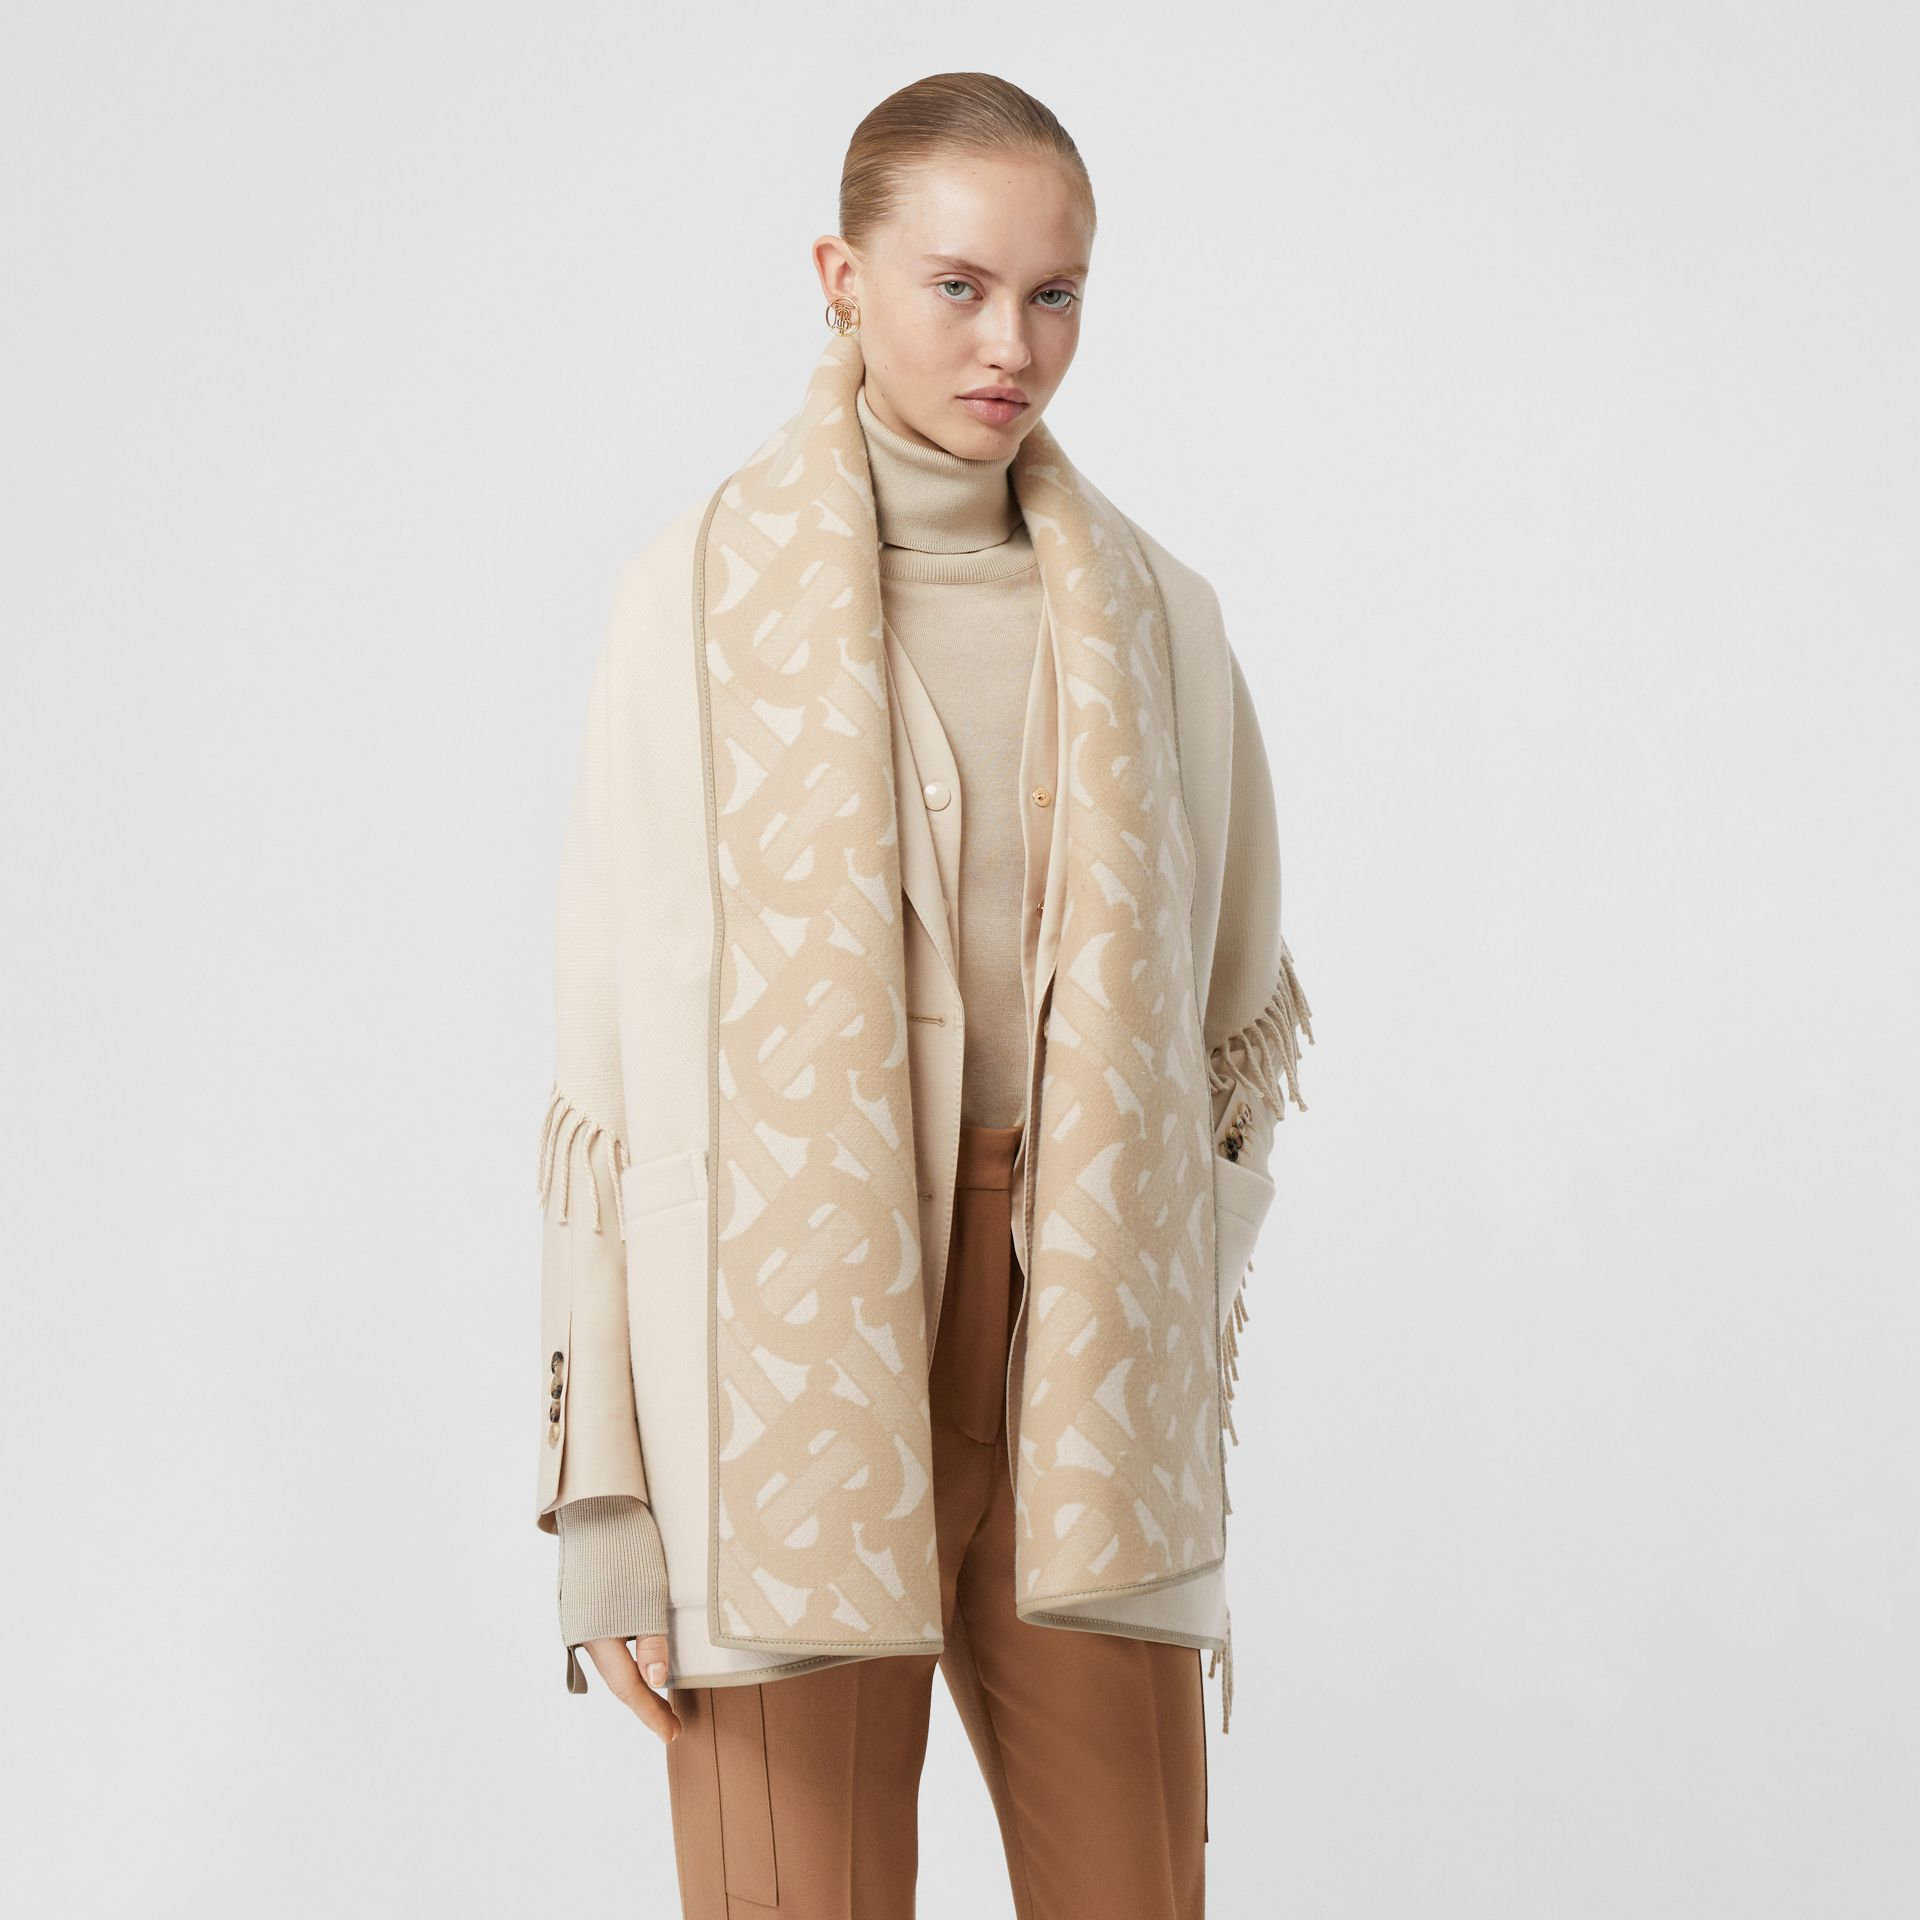 Monogram Merino Wool Cashmere Jacquard Cape in Soft Fawn - Women | Burberry United Kingdom - gallery image 5